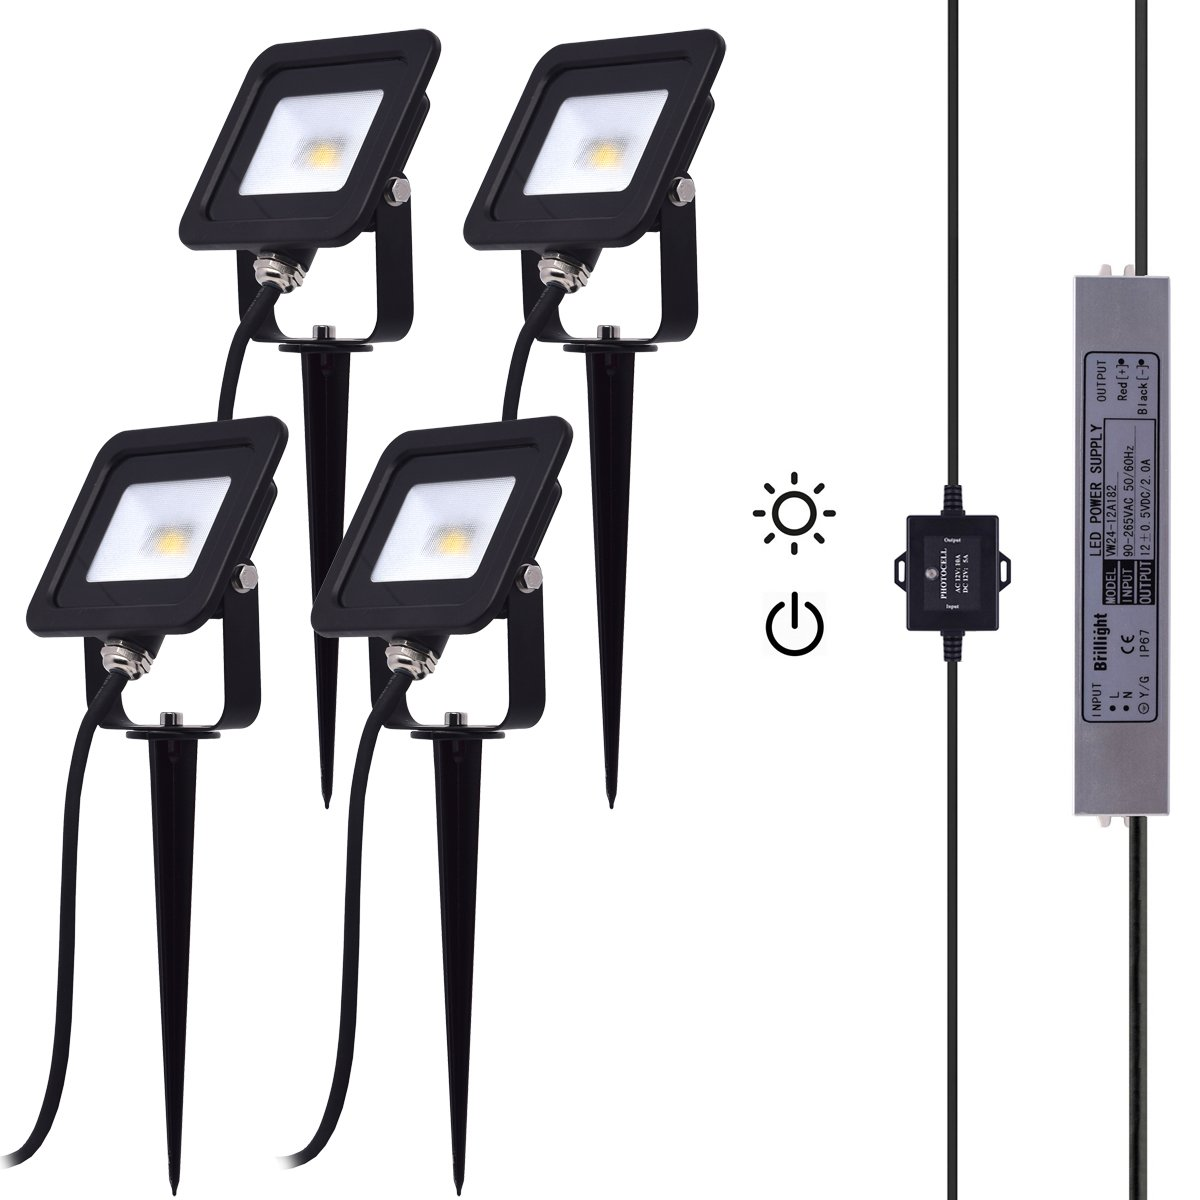 10w Dc 12v Dawn To Dusk Led Flood Light Kit Incl Photocell Sensor Photocells For Lights Switch Power Supply And Extension Cables Outdoor Landscape Lighting Pack Of 4